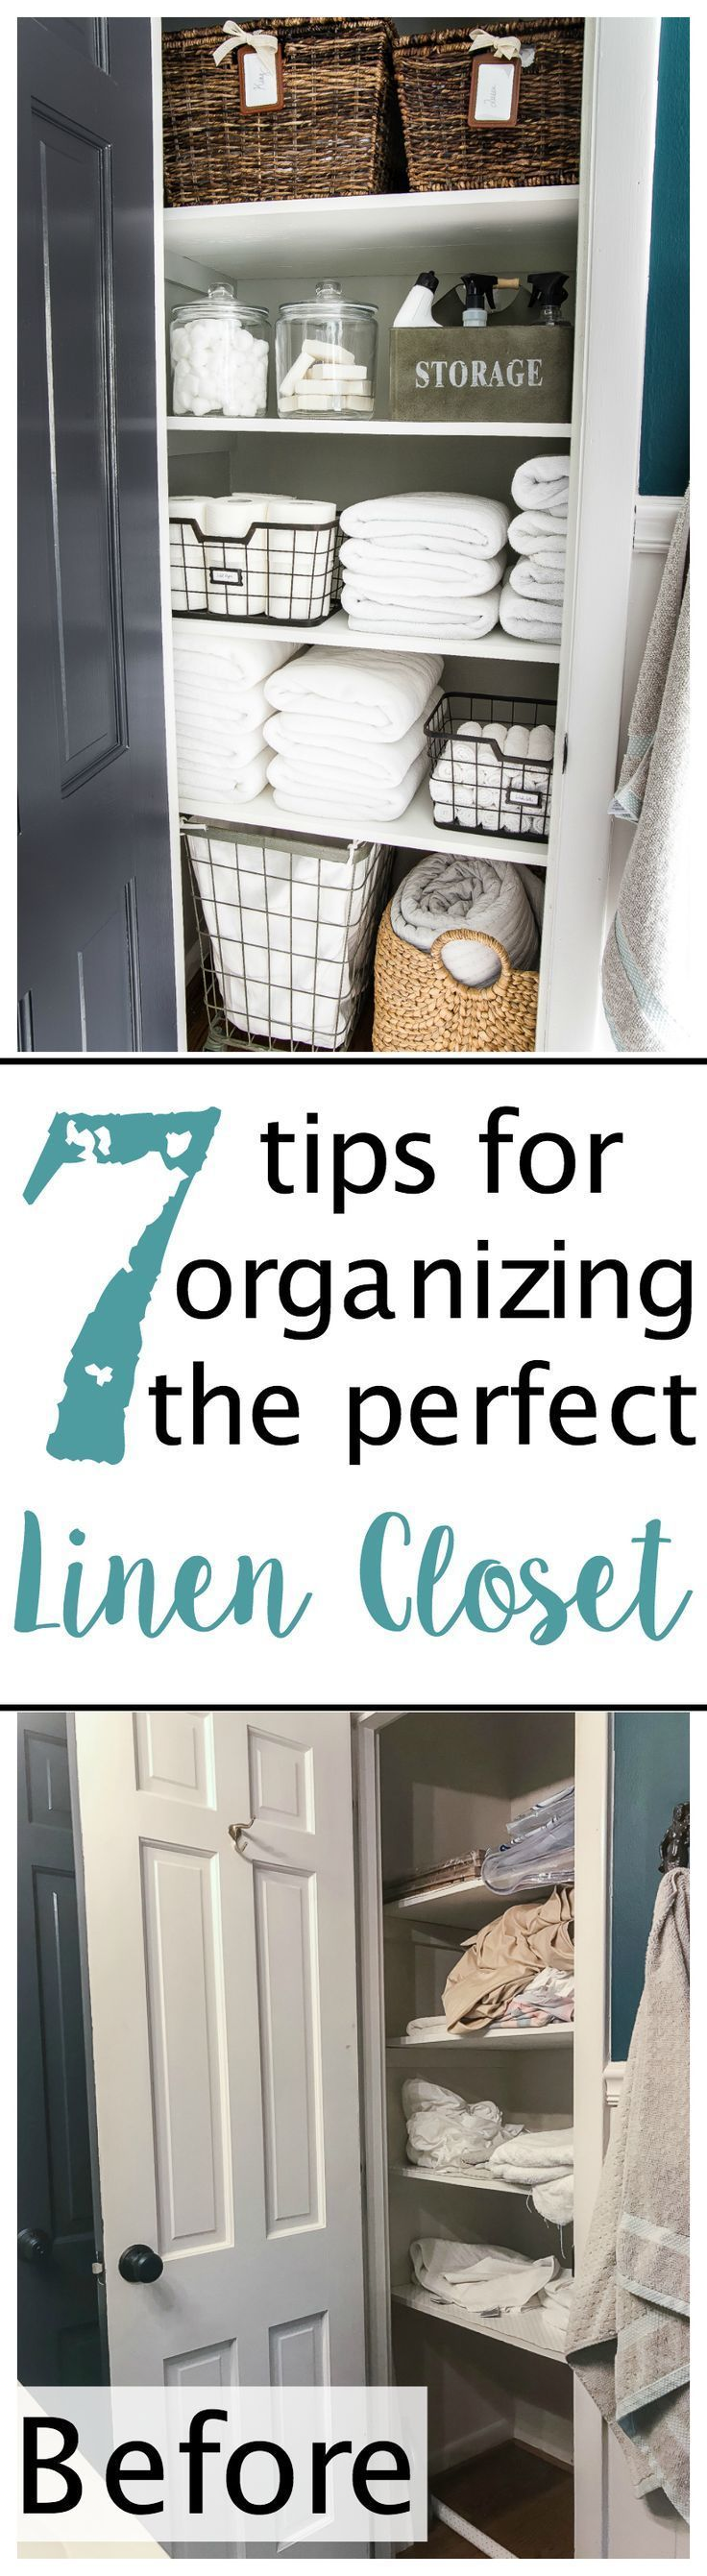 Best Cleaning Organization Images On Pinterest Cleaning - College custom vinyl decals for car windowsbest back window decals ideas on pinterest window art